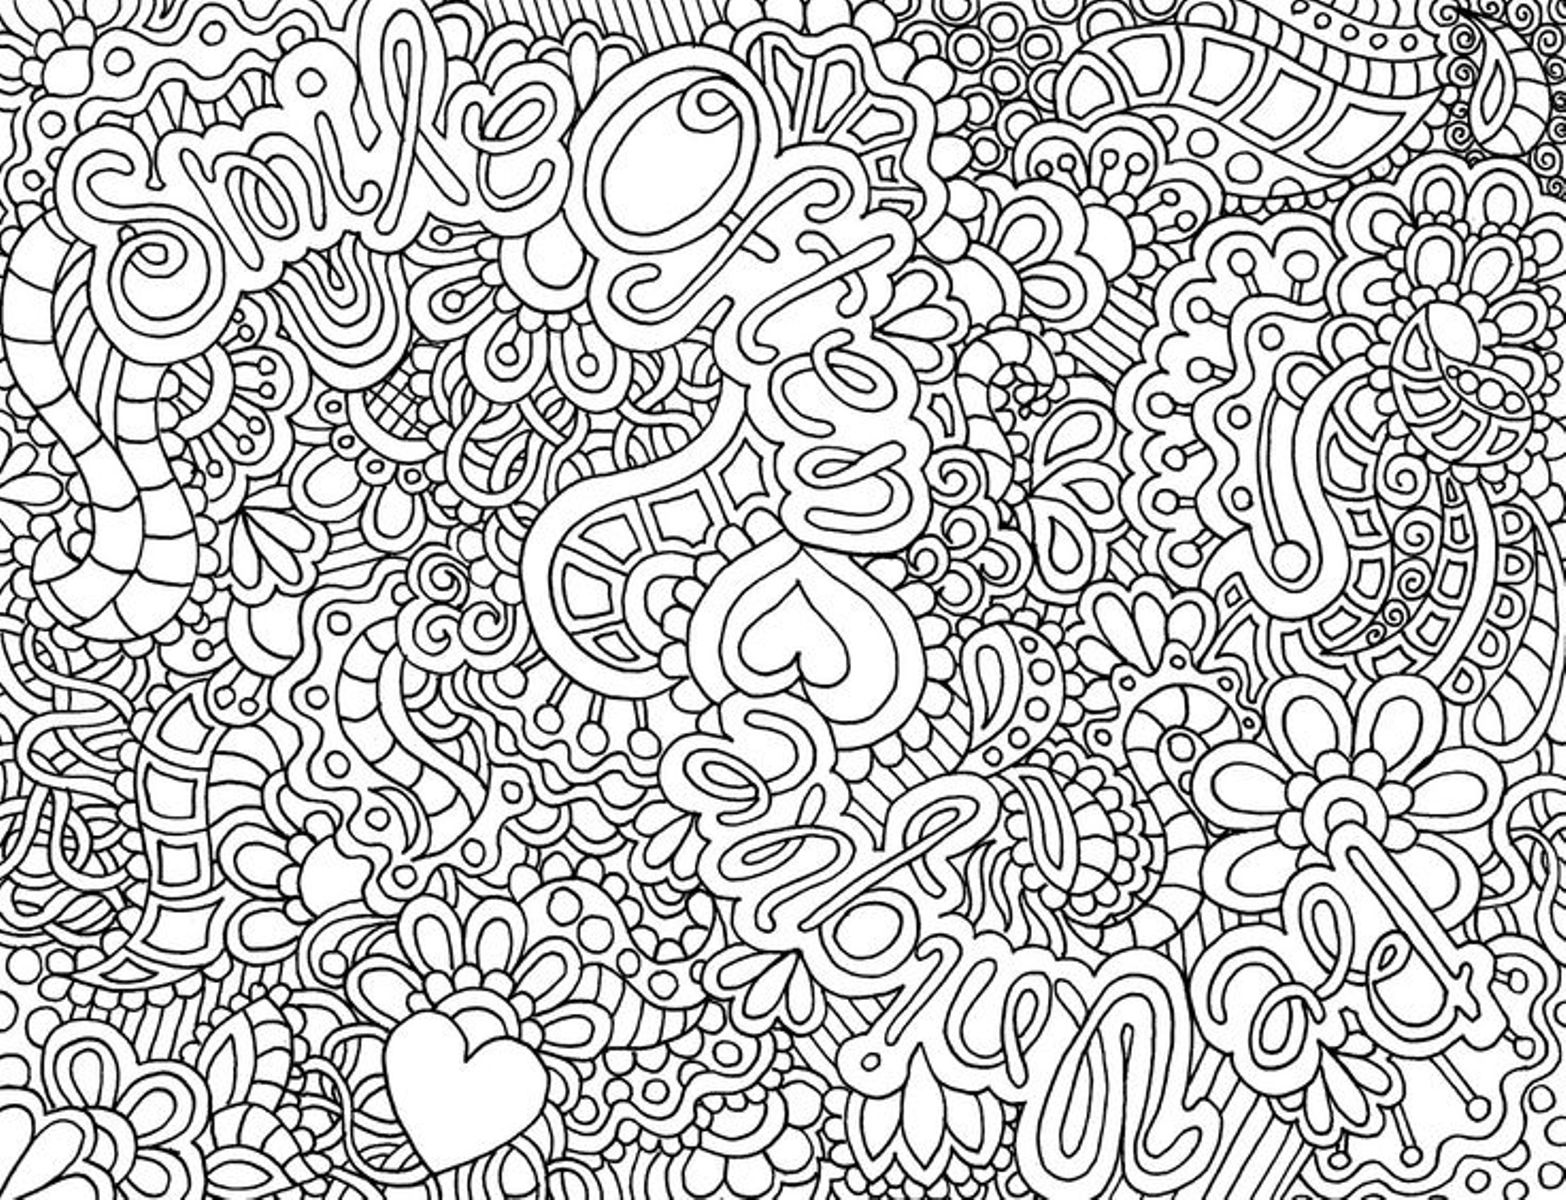 detailed coloring pages - Coloring Pages Difficult Printable